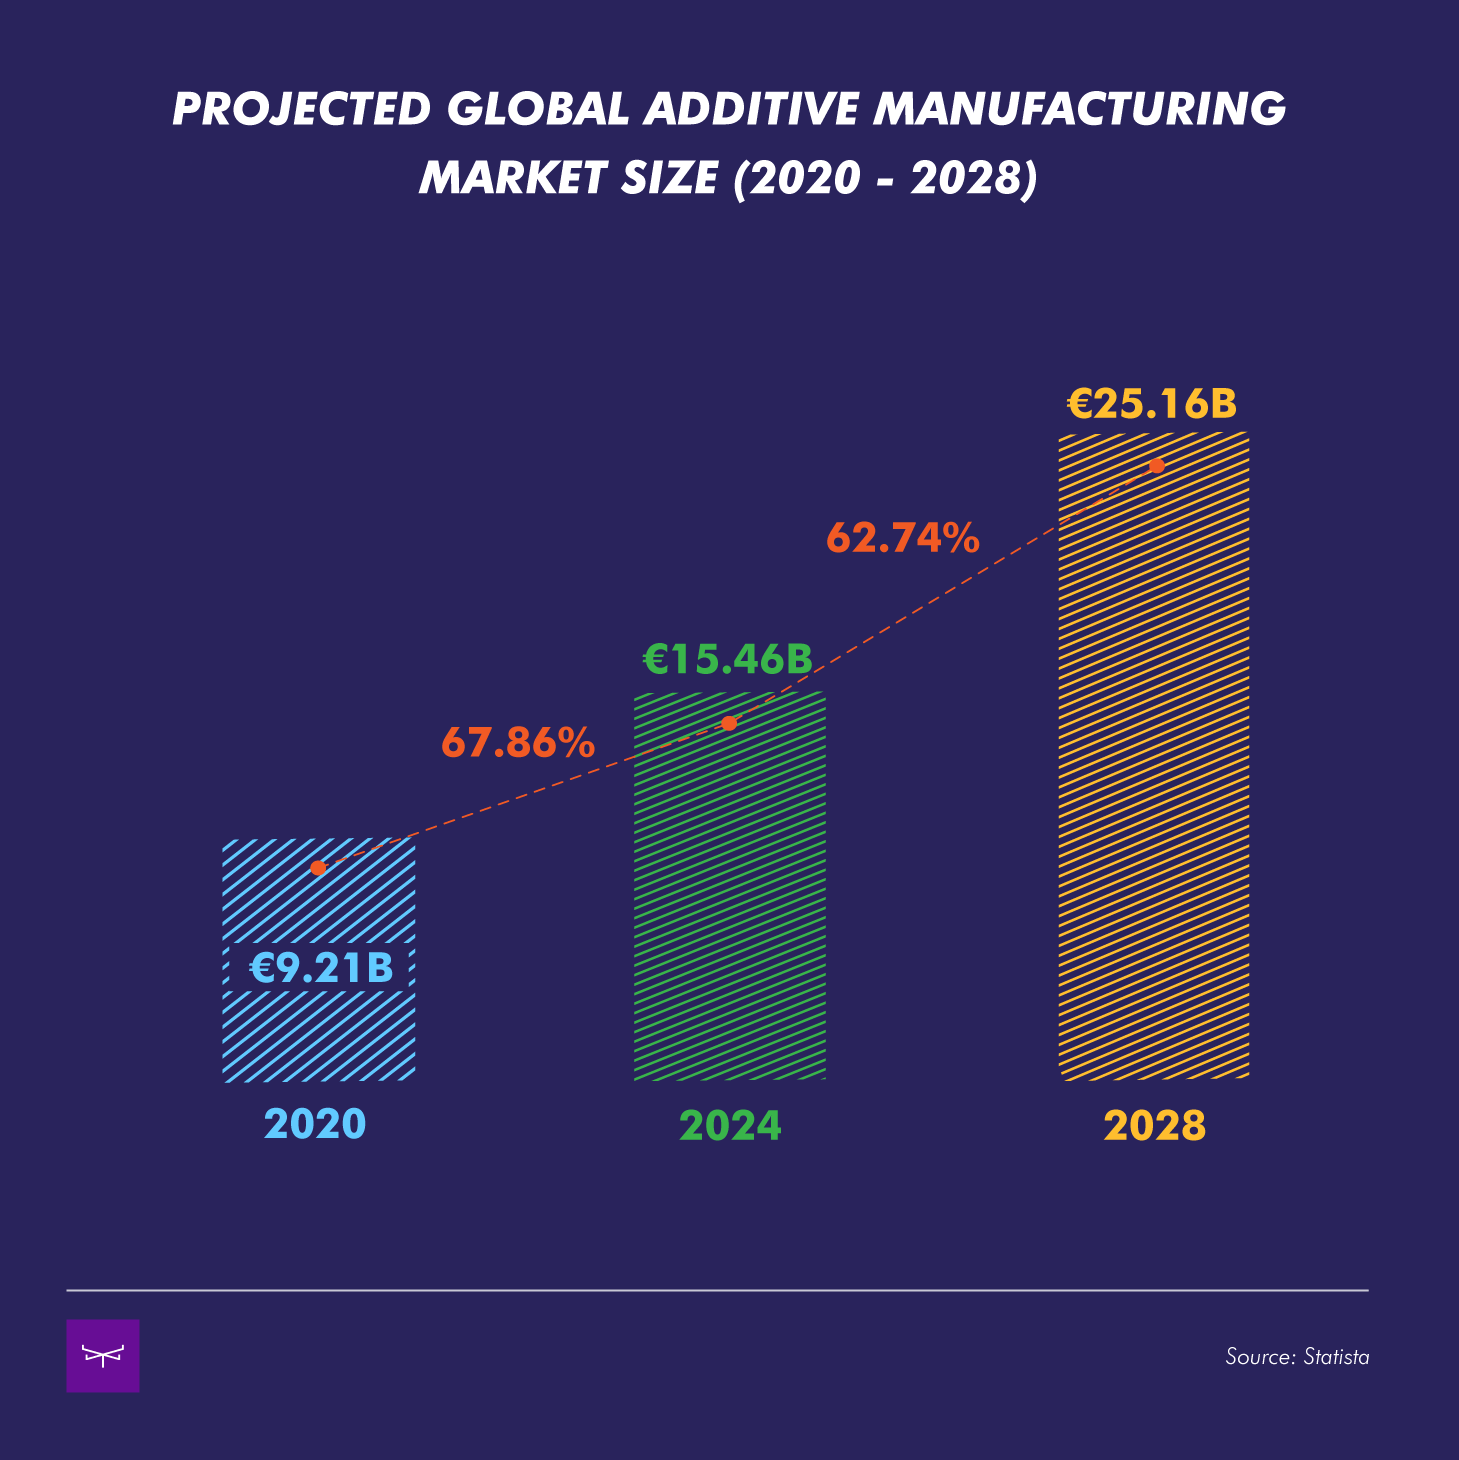 global-additive-manufacturing-2020-2028.png